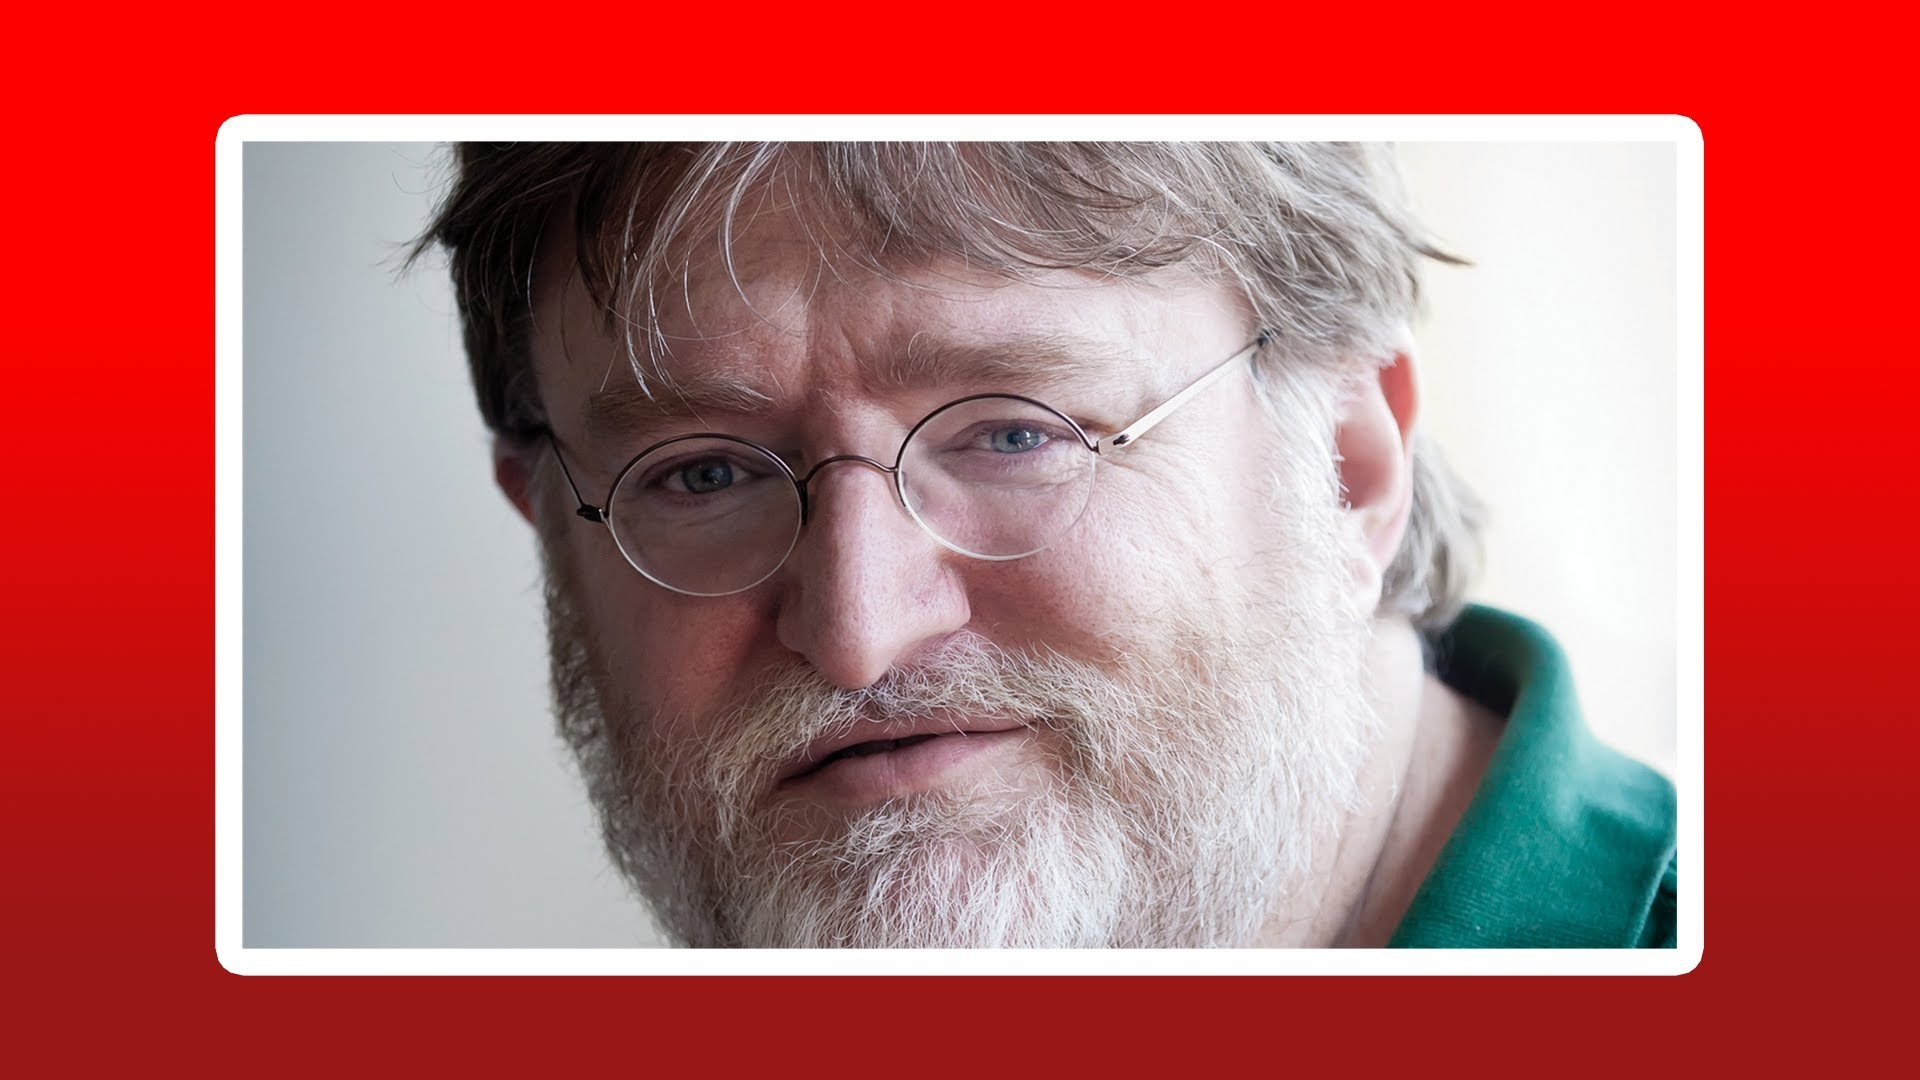 Ode to Gabe Newell – A PC Gamers Christmas Carol